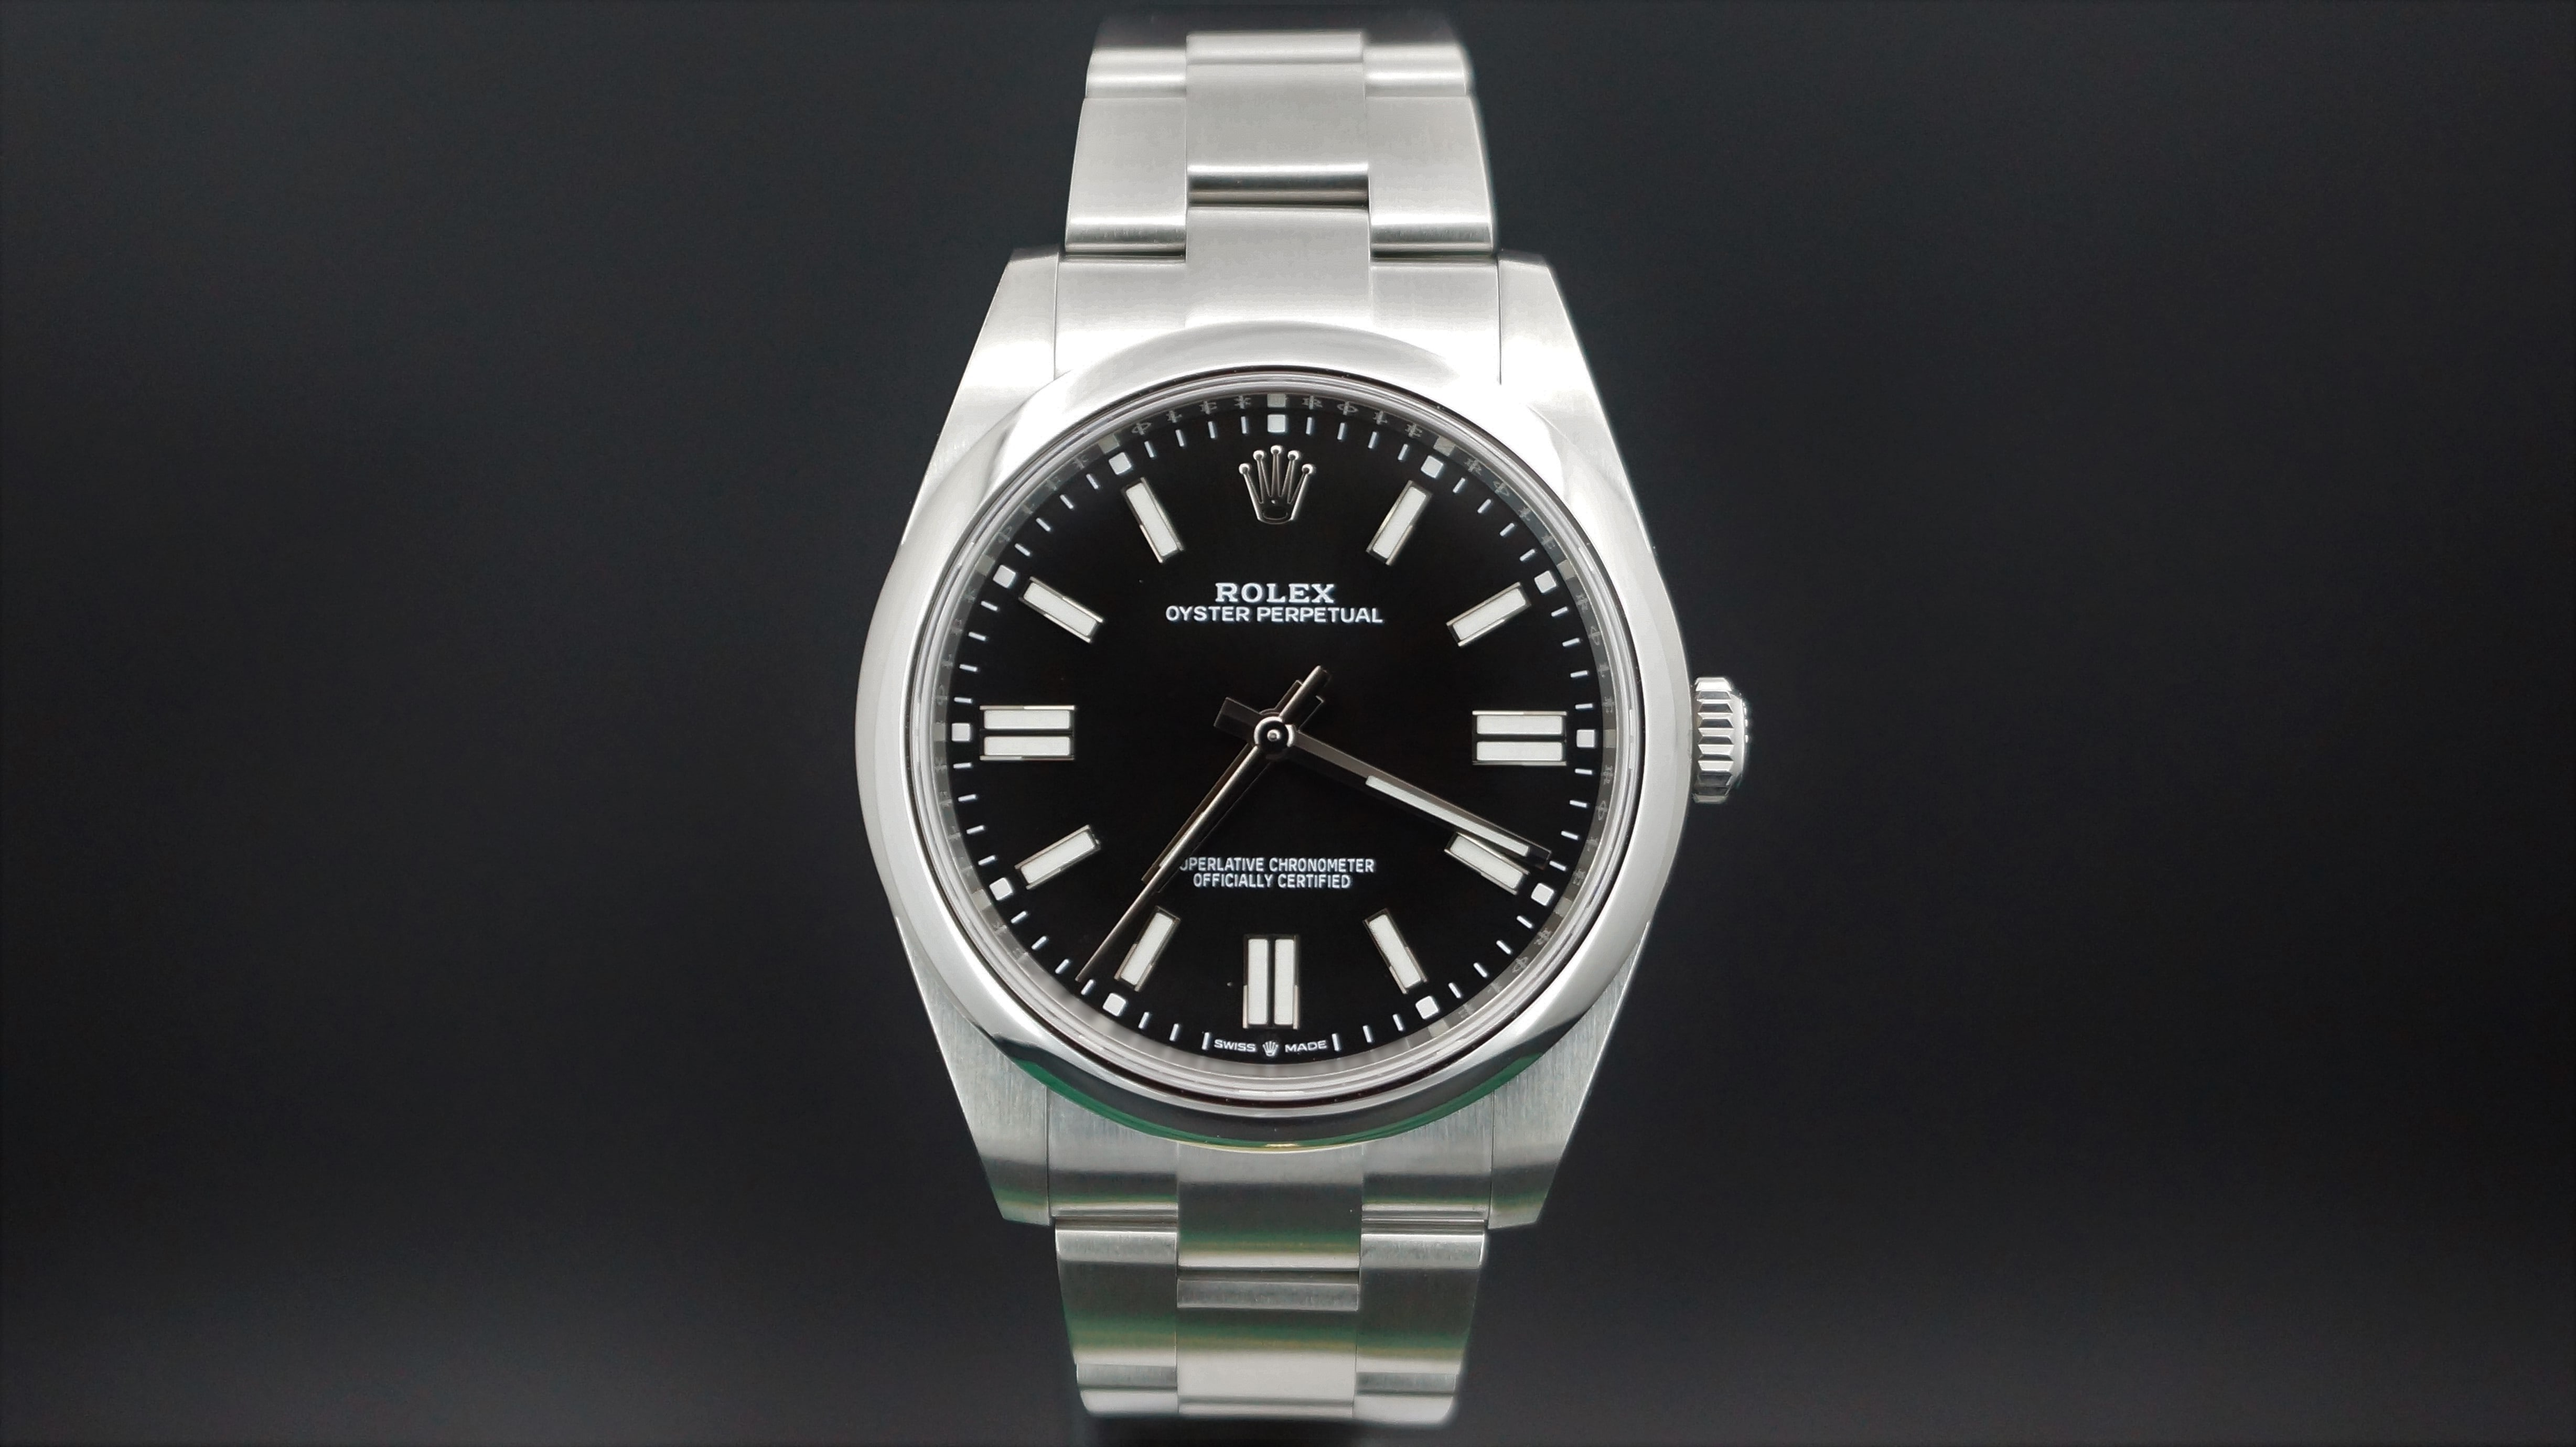 Rolex Oyster Perpetual 41mm Ref:124300